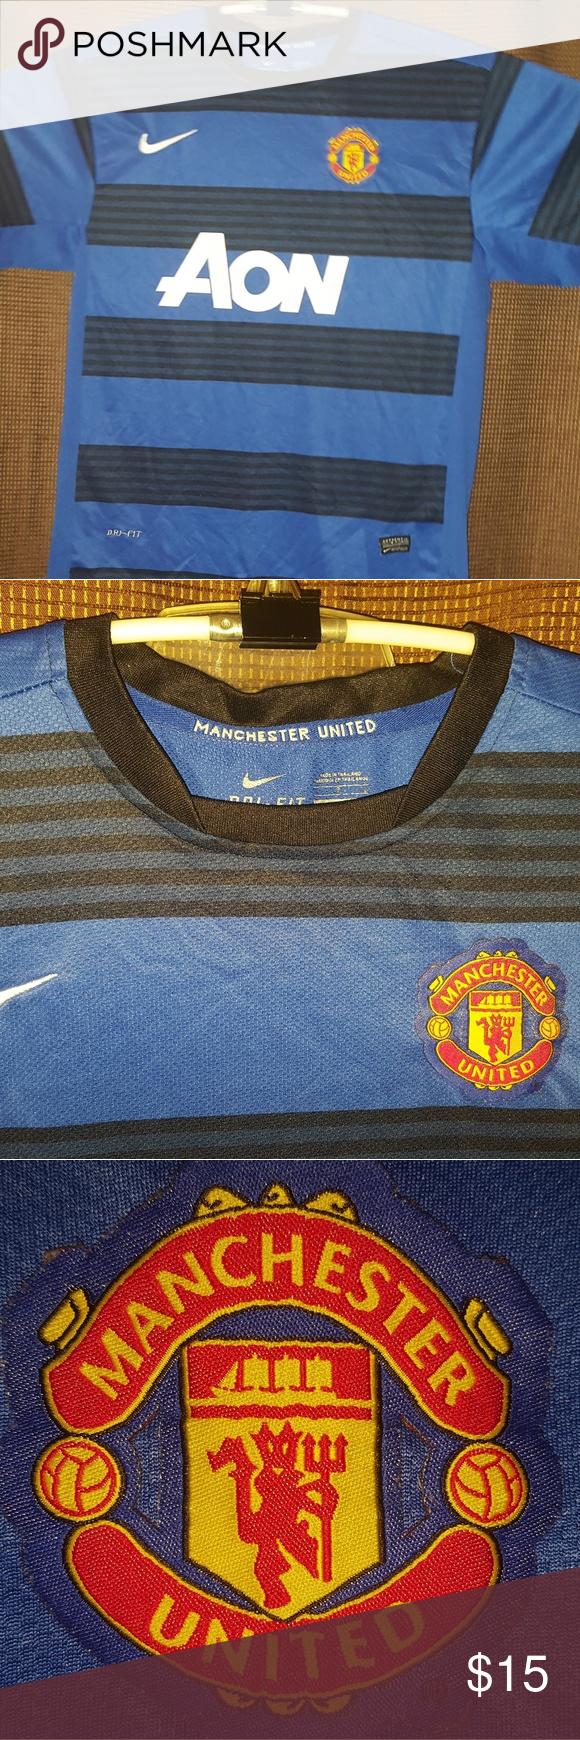 L - Nike Manchester United L/S Away 14/15 Jersey Long Sleeve. Used but loved. Worn out numbers. No rips or stains. Dri-Fit Moisture Whicking Technology. Reiterating Loved and Worned a lot for extra luck. Authenticity tag coming loose. All offers will be considered. Please post any questions or comments. Will reply asap. Nike Shirts Tees - Long Sleeve